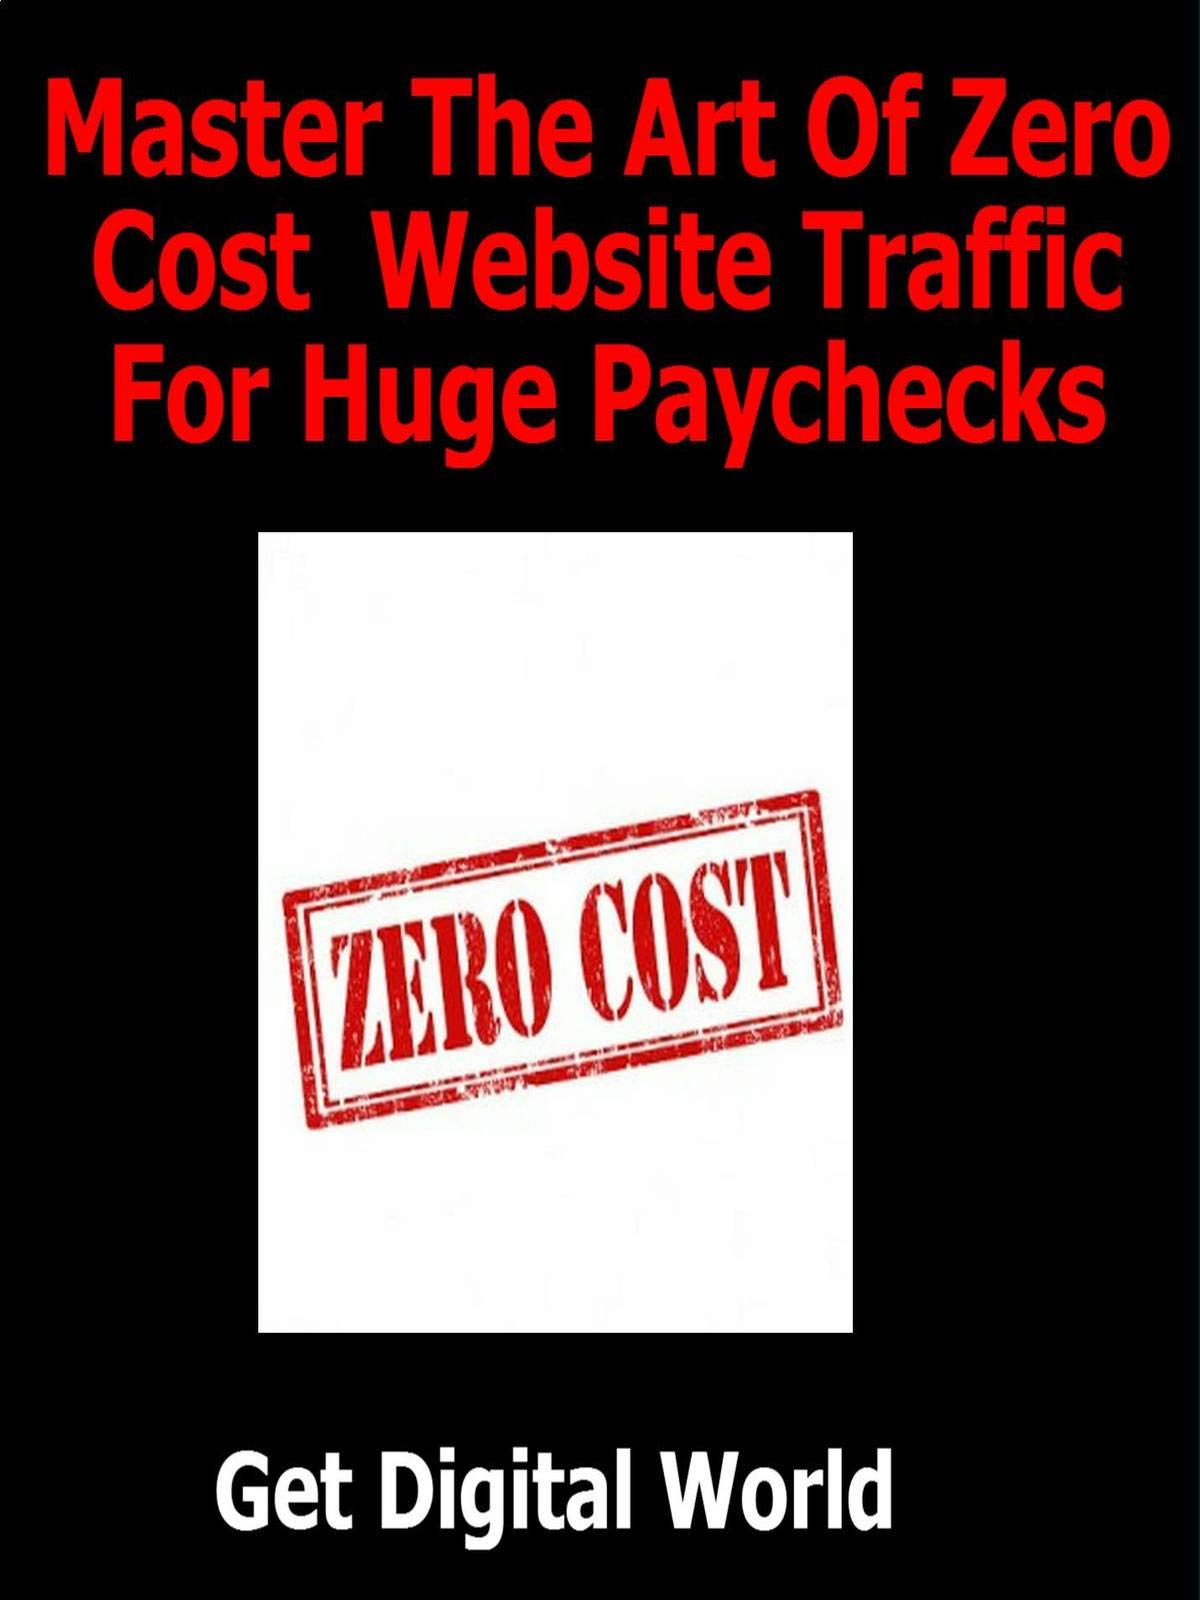 Master The Art Of Zero Cost Website Traffic For Huge Paychecks